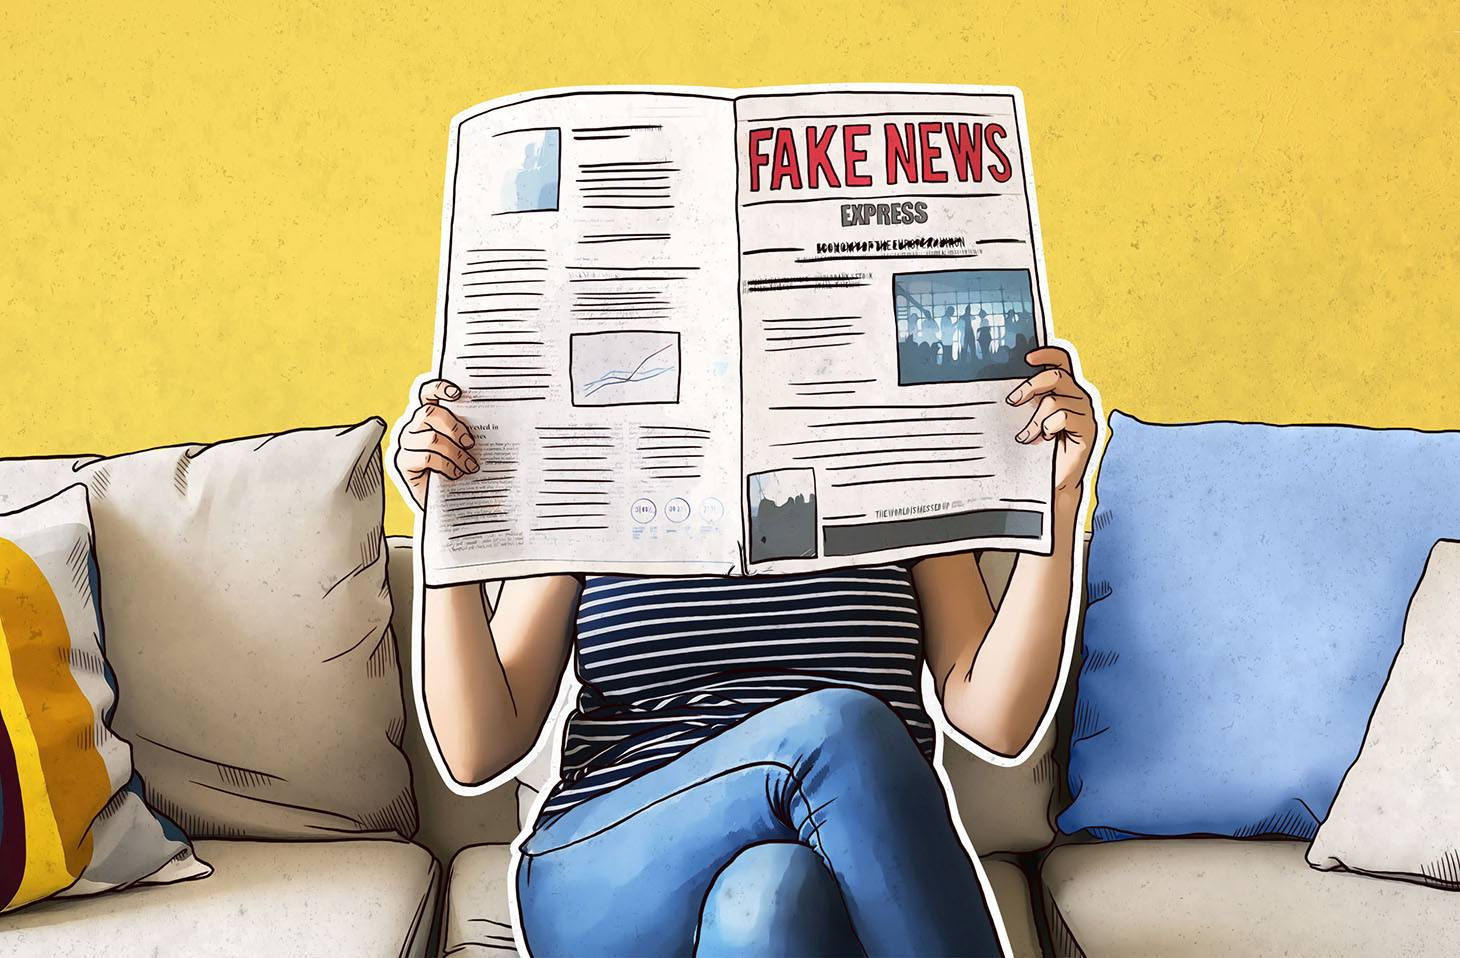 Kaspersky Lab bloqueia fake news disseminada no WhatsApp